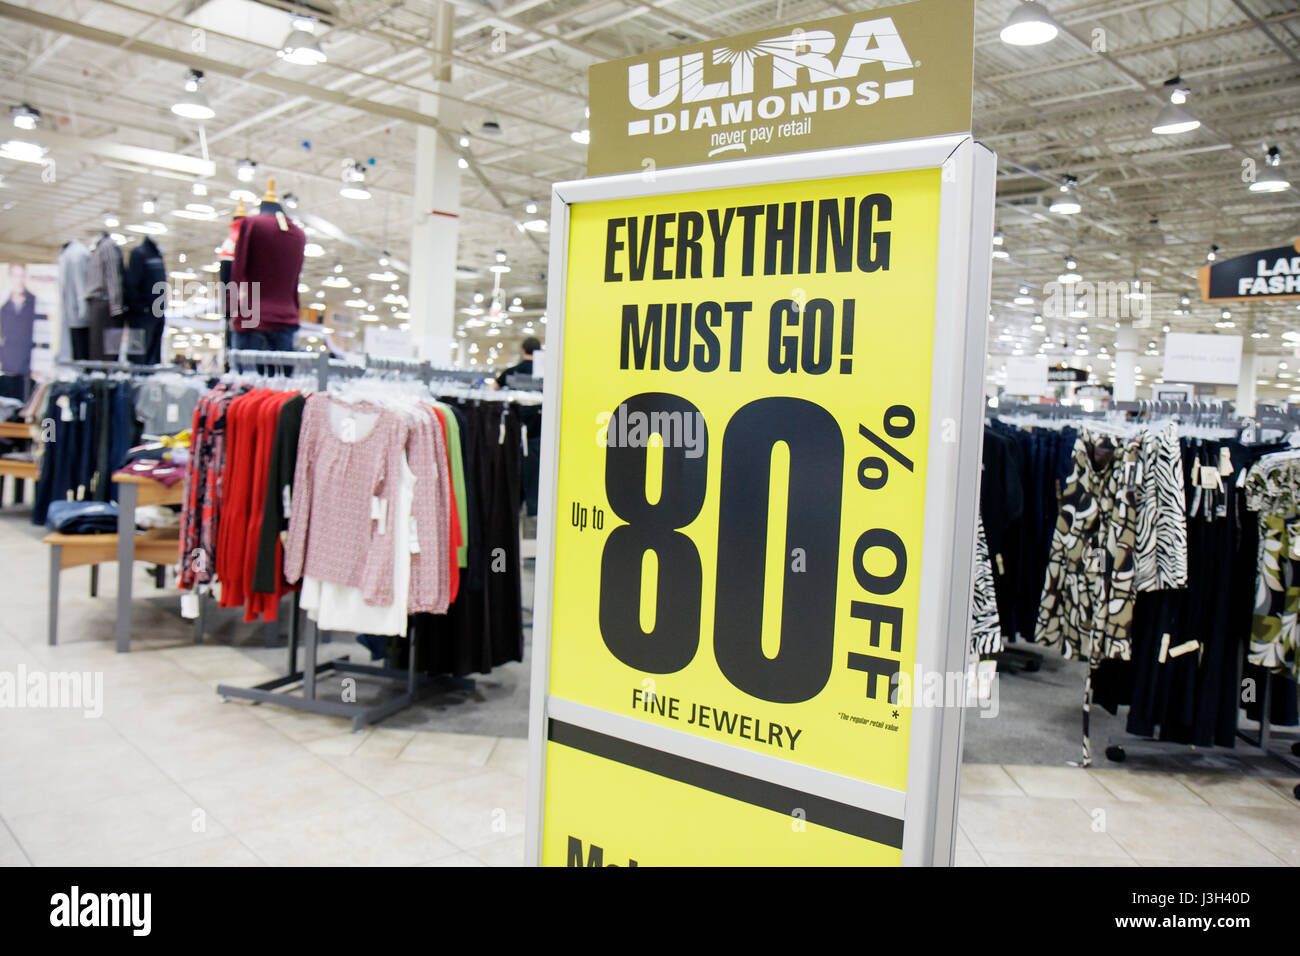 Miami Florida Dolphin Mall Burlington Coat Factory discount outlet sign sale  80% off everything must go fine jewelry clothing bc3f9a1828ccf